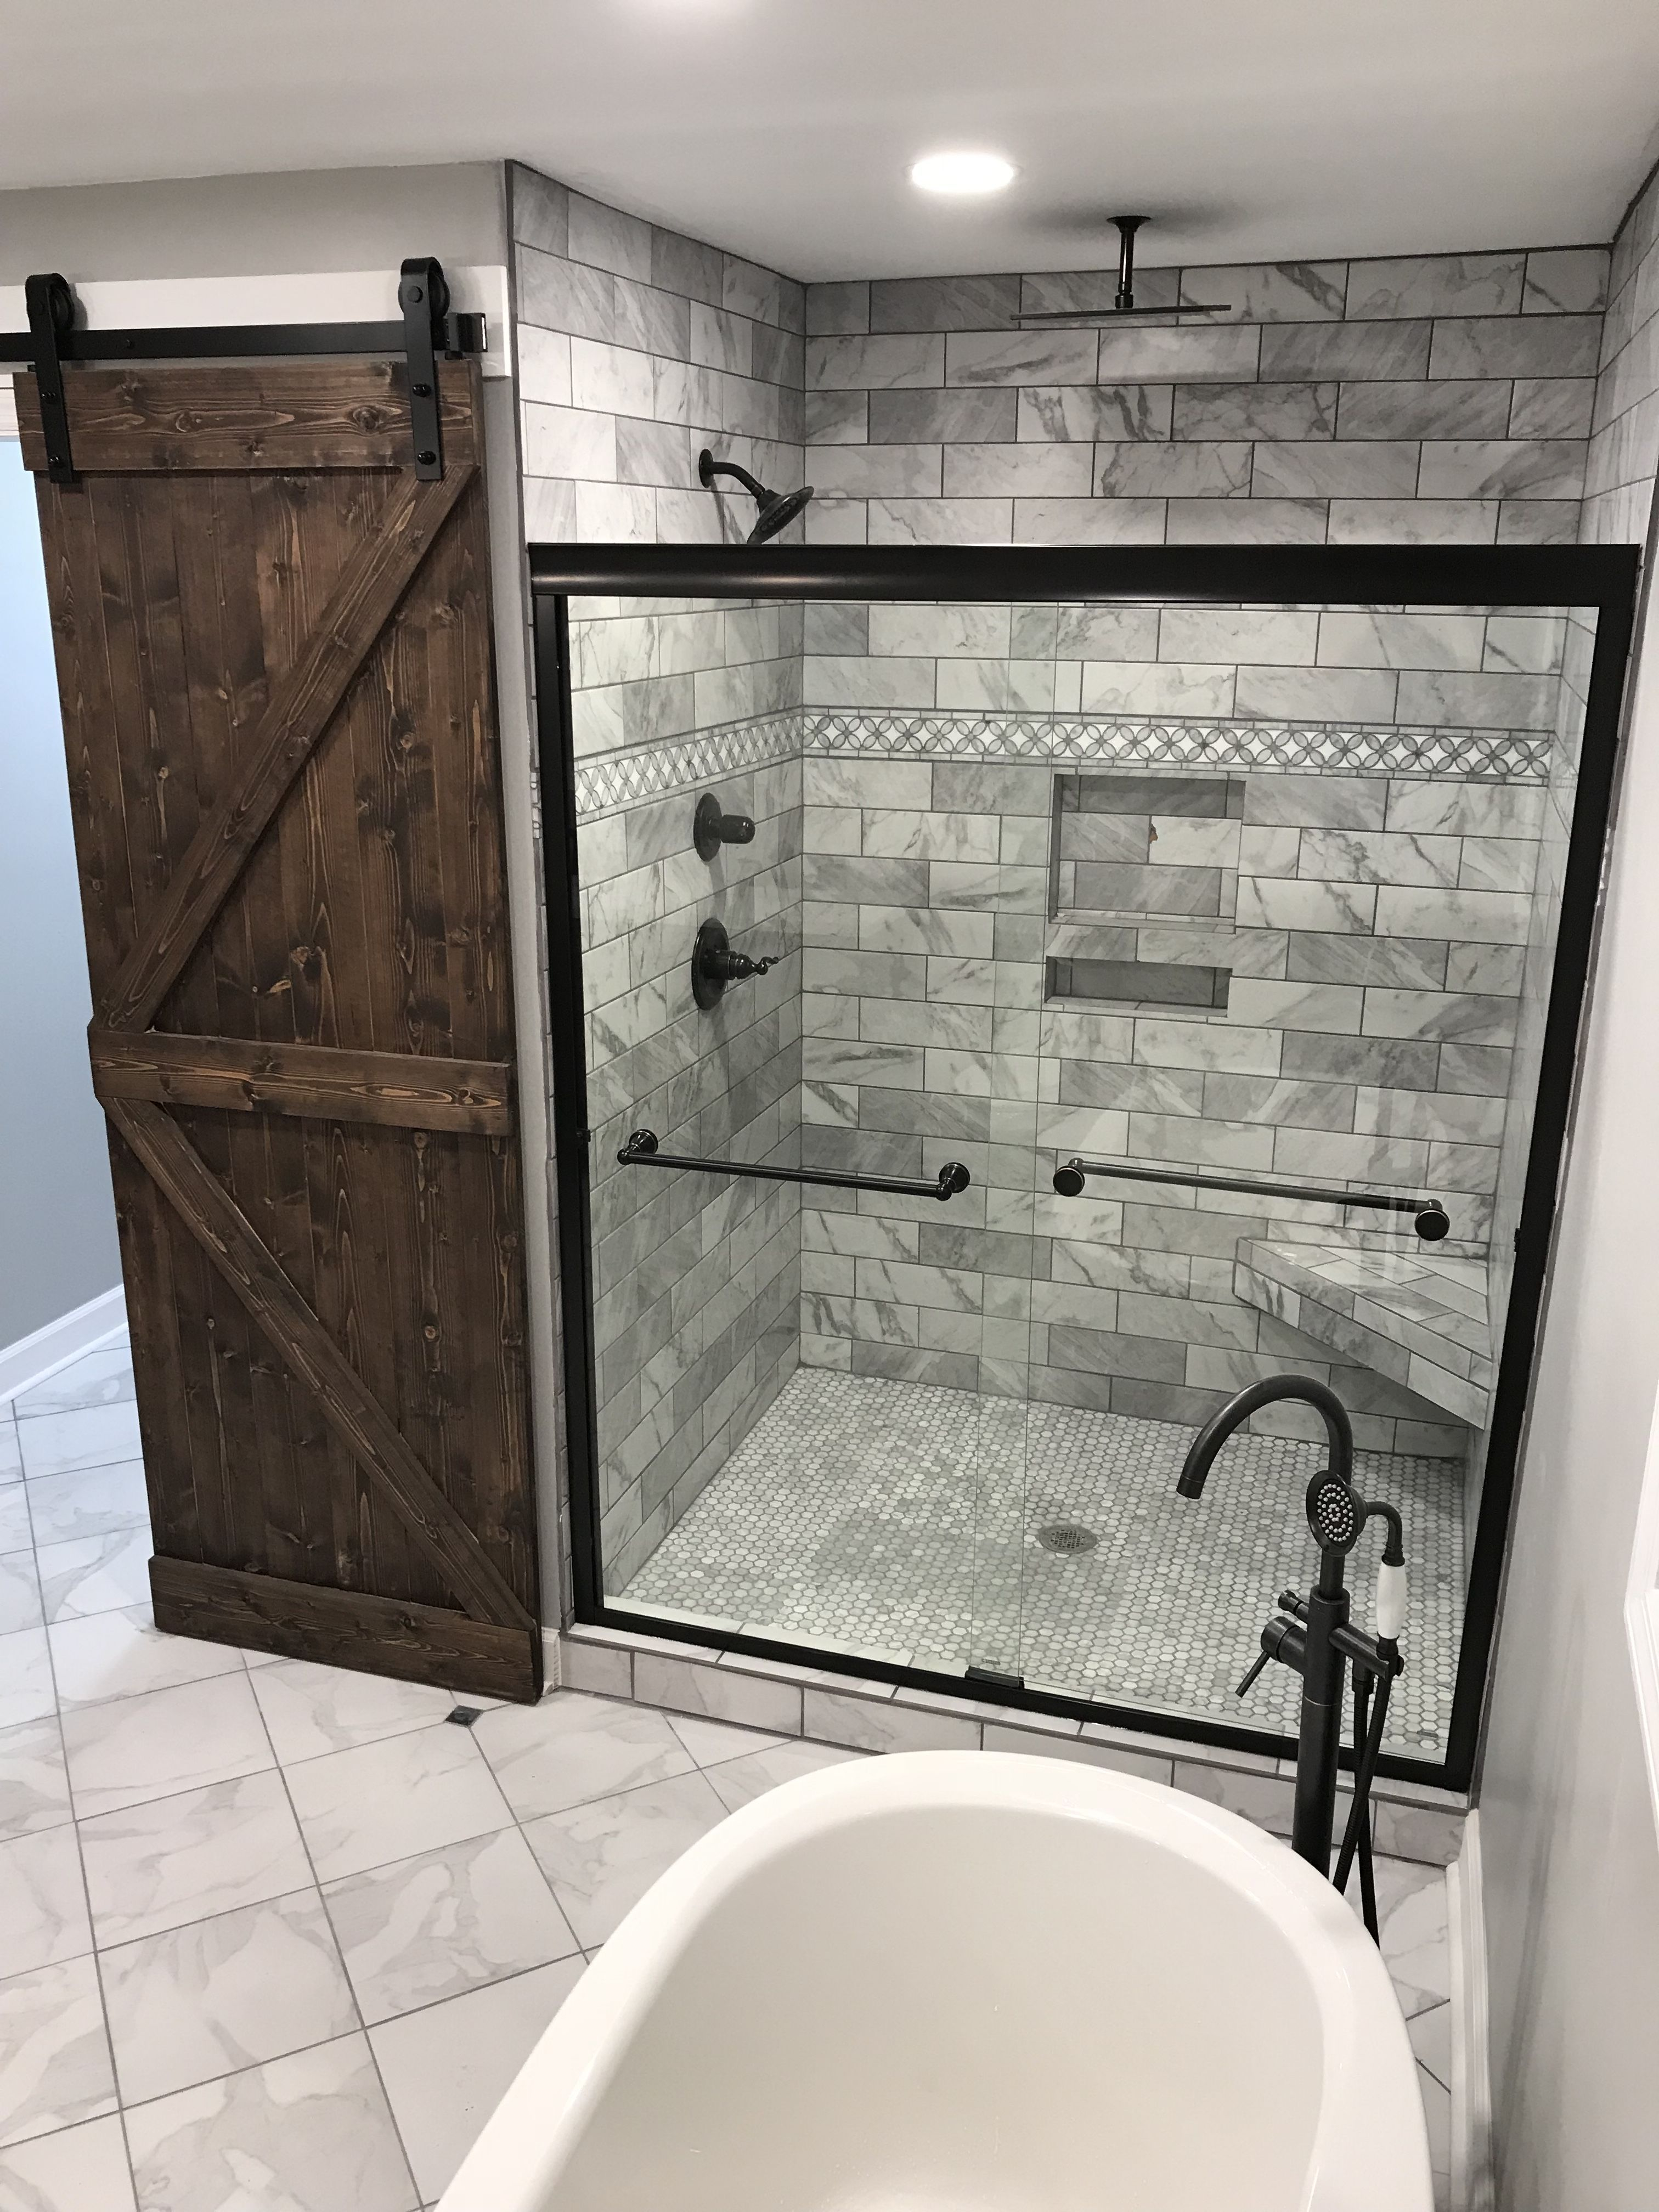 10 Beautiful Modern Tile Shower Ideas For Small Bathrooms That